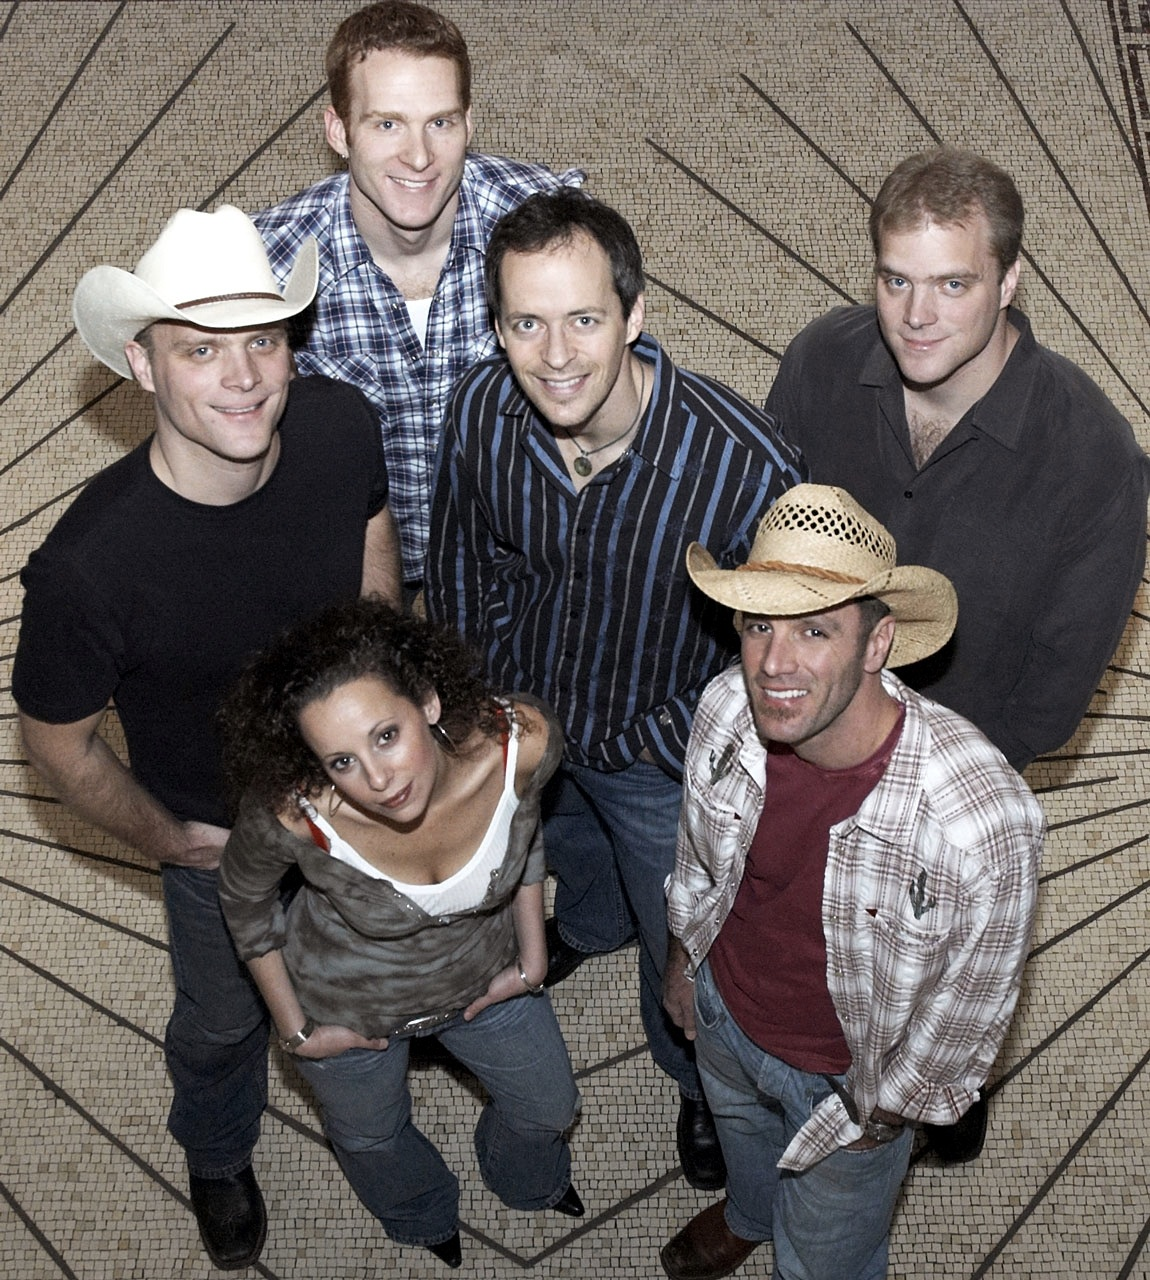 The band's alter ego - the Country Sky Band